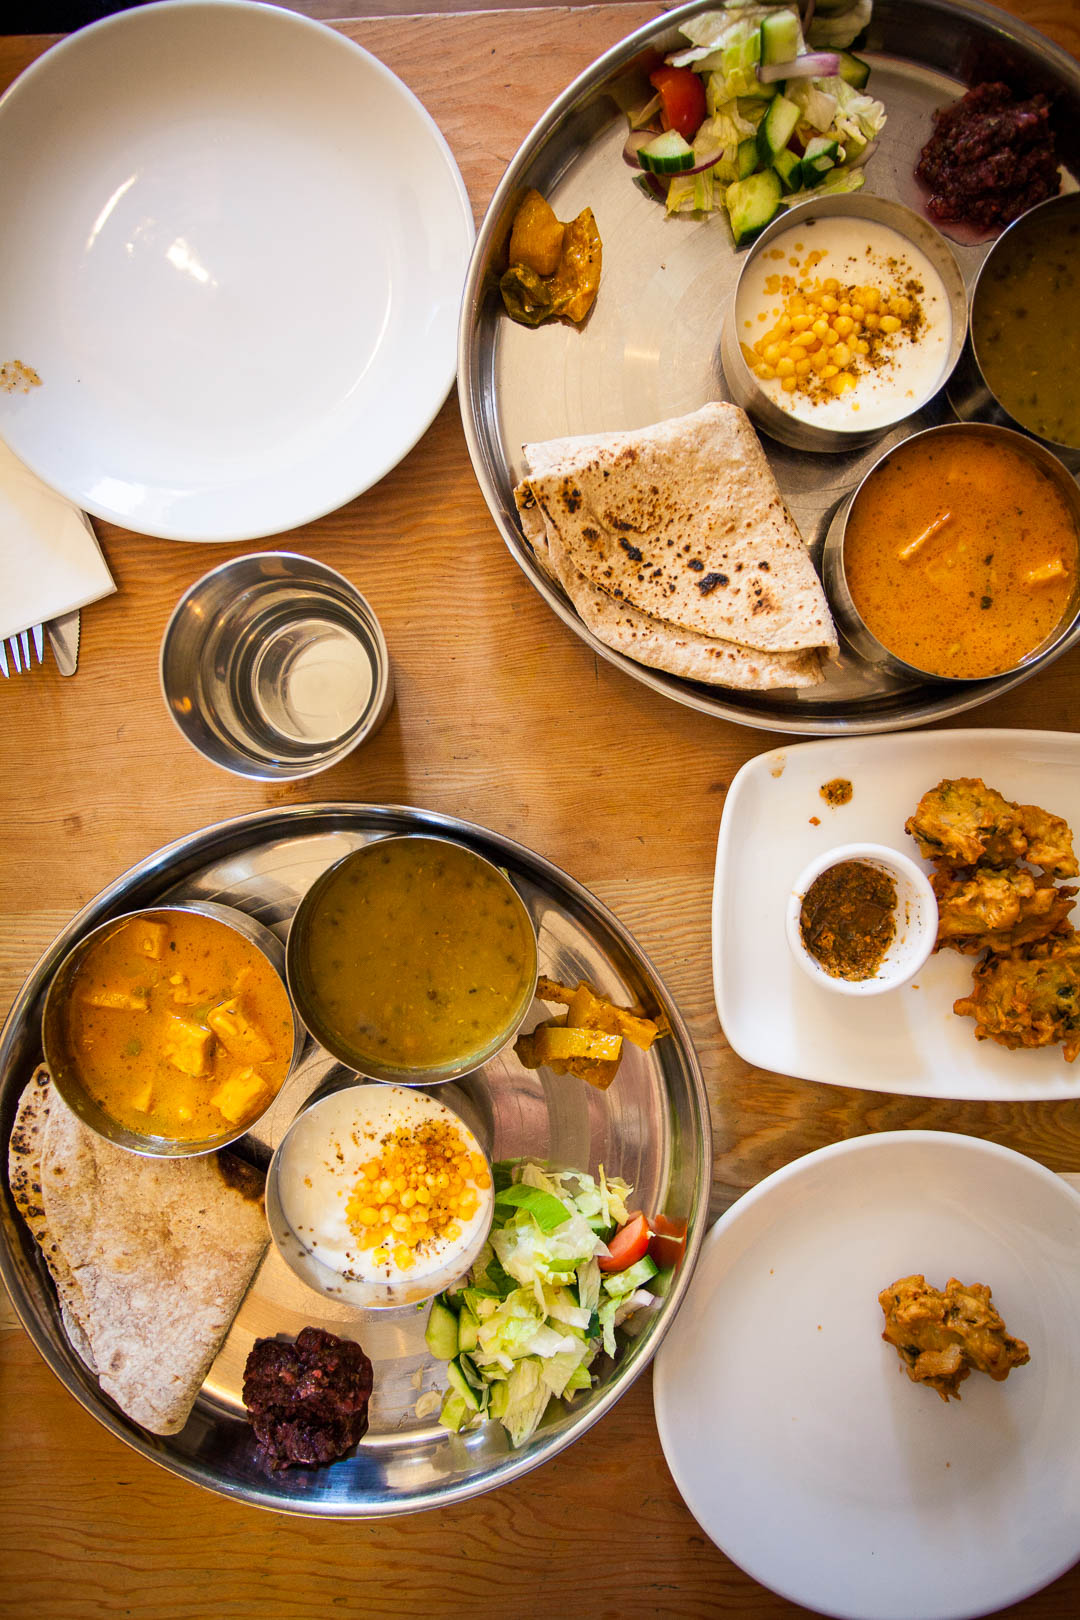 Restaurant Review: Ranjit's Kitchen Glasgow | Ranjit's Kitchen Glasgow is a family-run vegetarian restaurant serving authentic Panjabi food. The menu is simple and minimalistic, offering only what you would find in a traditional Panjabi household on a daily basis, such as daal, sabji, pakora and paranthas, with lots of vegan options.